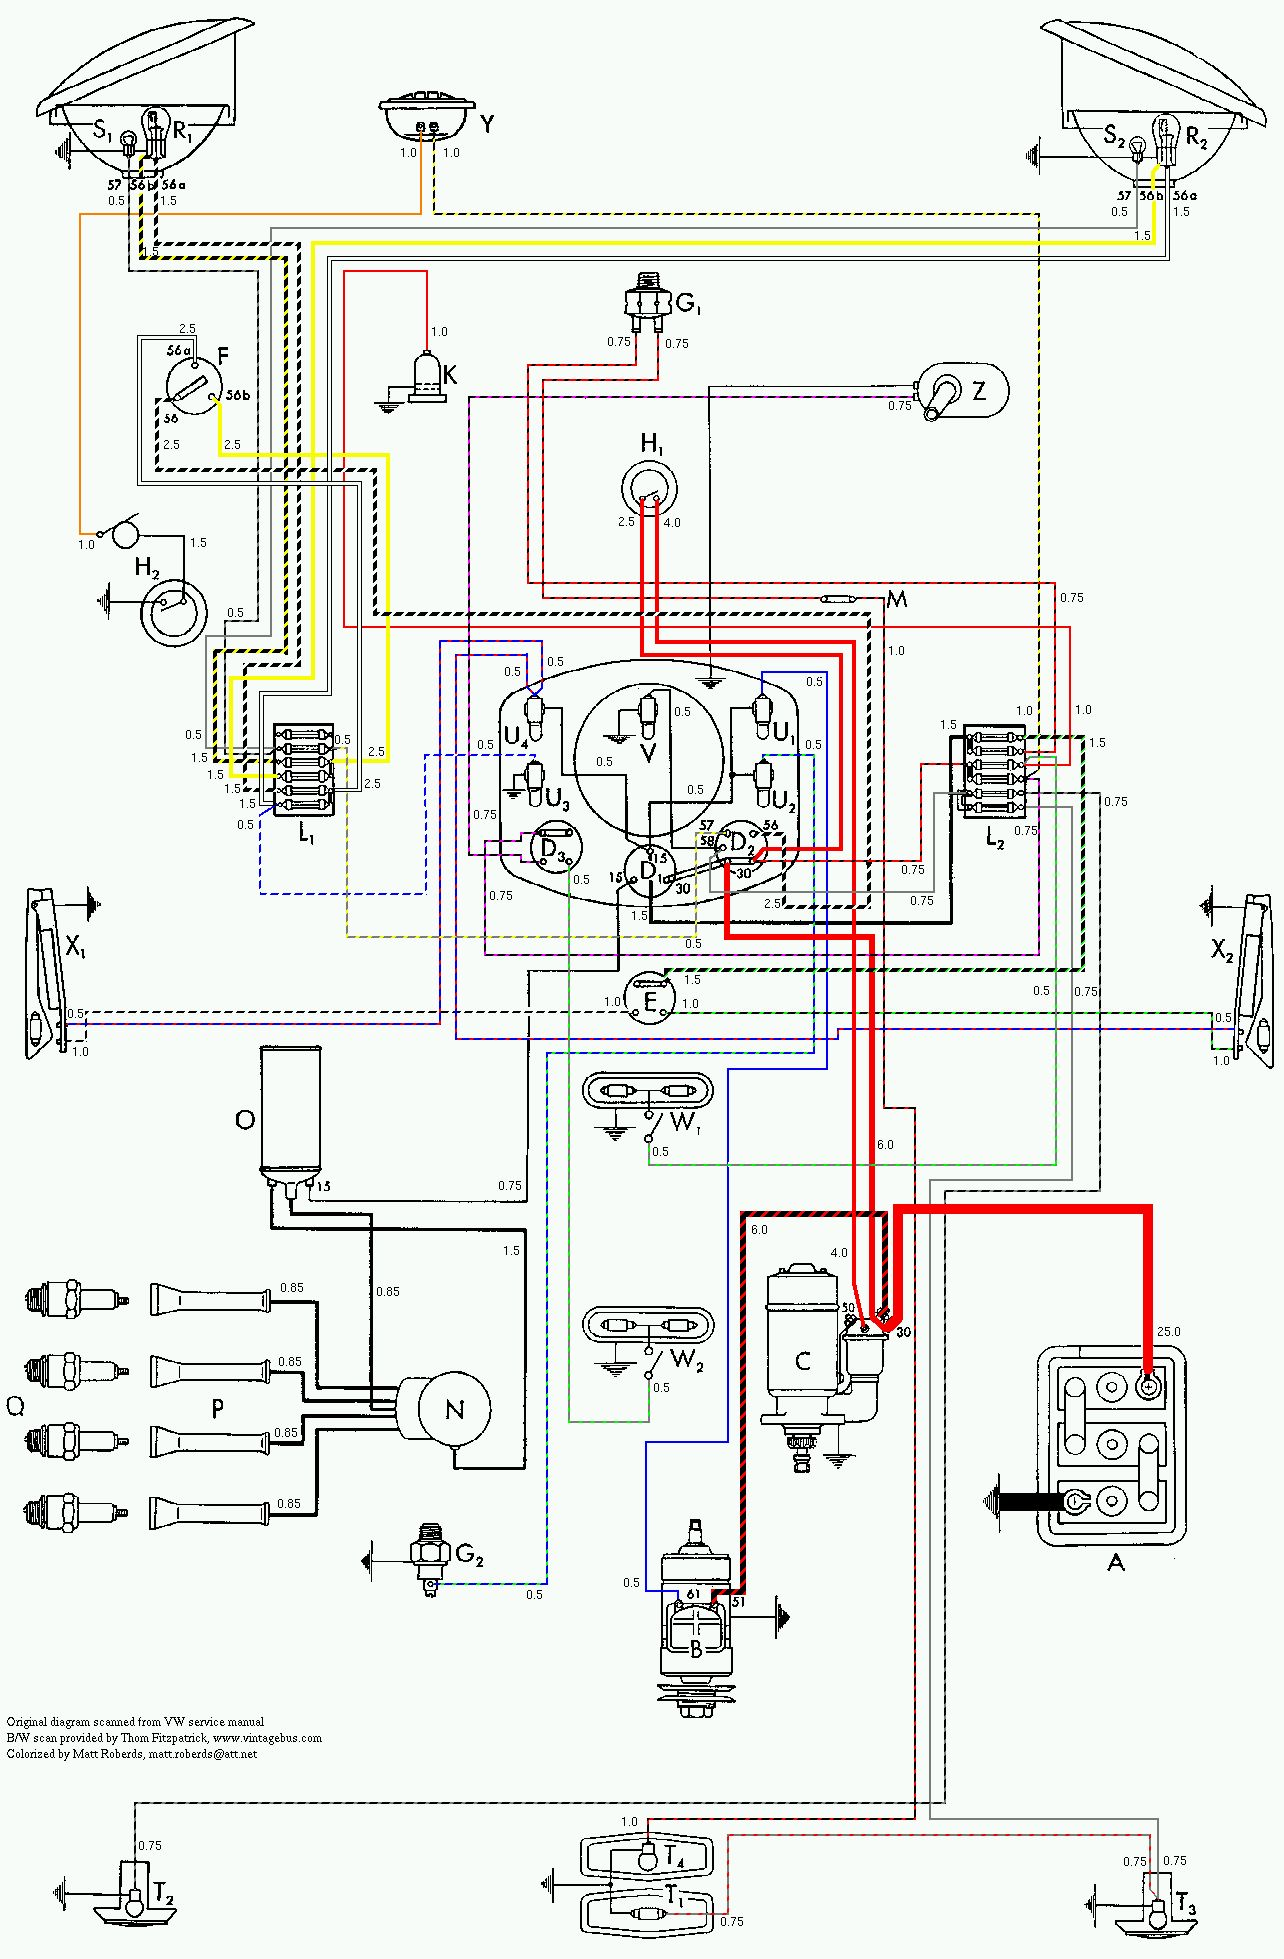 Alternator Wiring Harness 2003 Eurovan Content Resource Of 1983 Ford Diagram Vintagebus Com Vw Bus And Other Diagrams Rh 04 Escape Chevy Truck